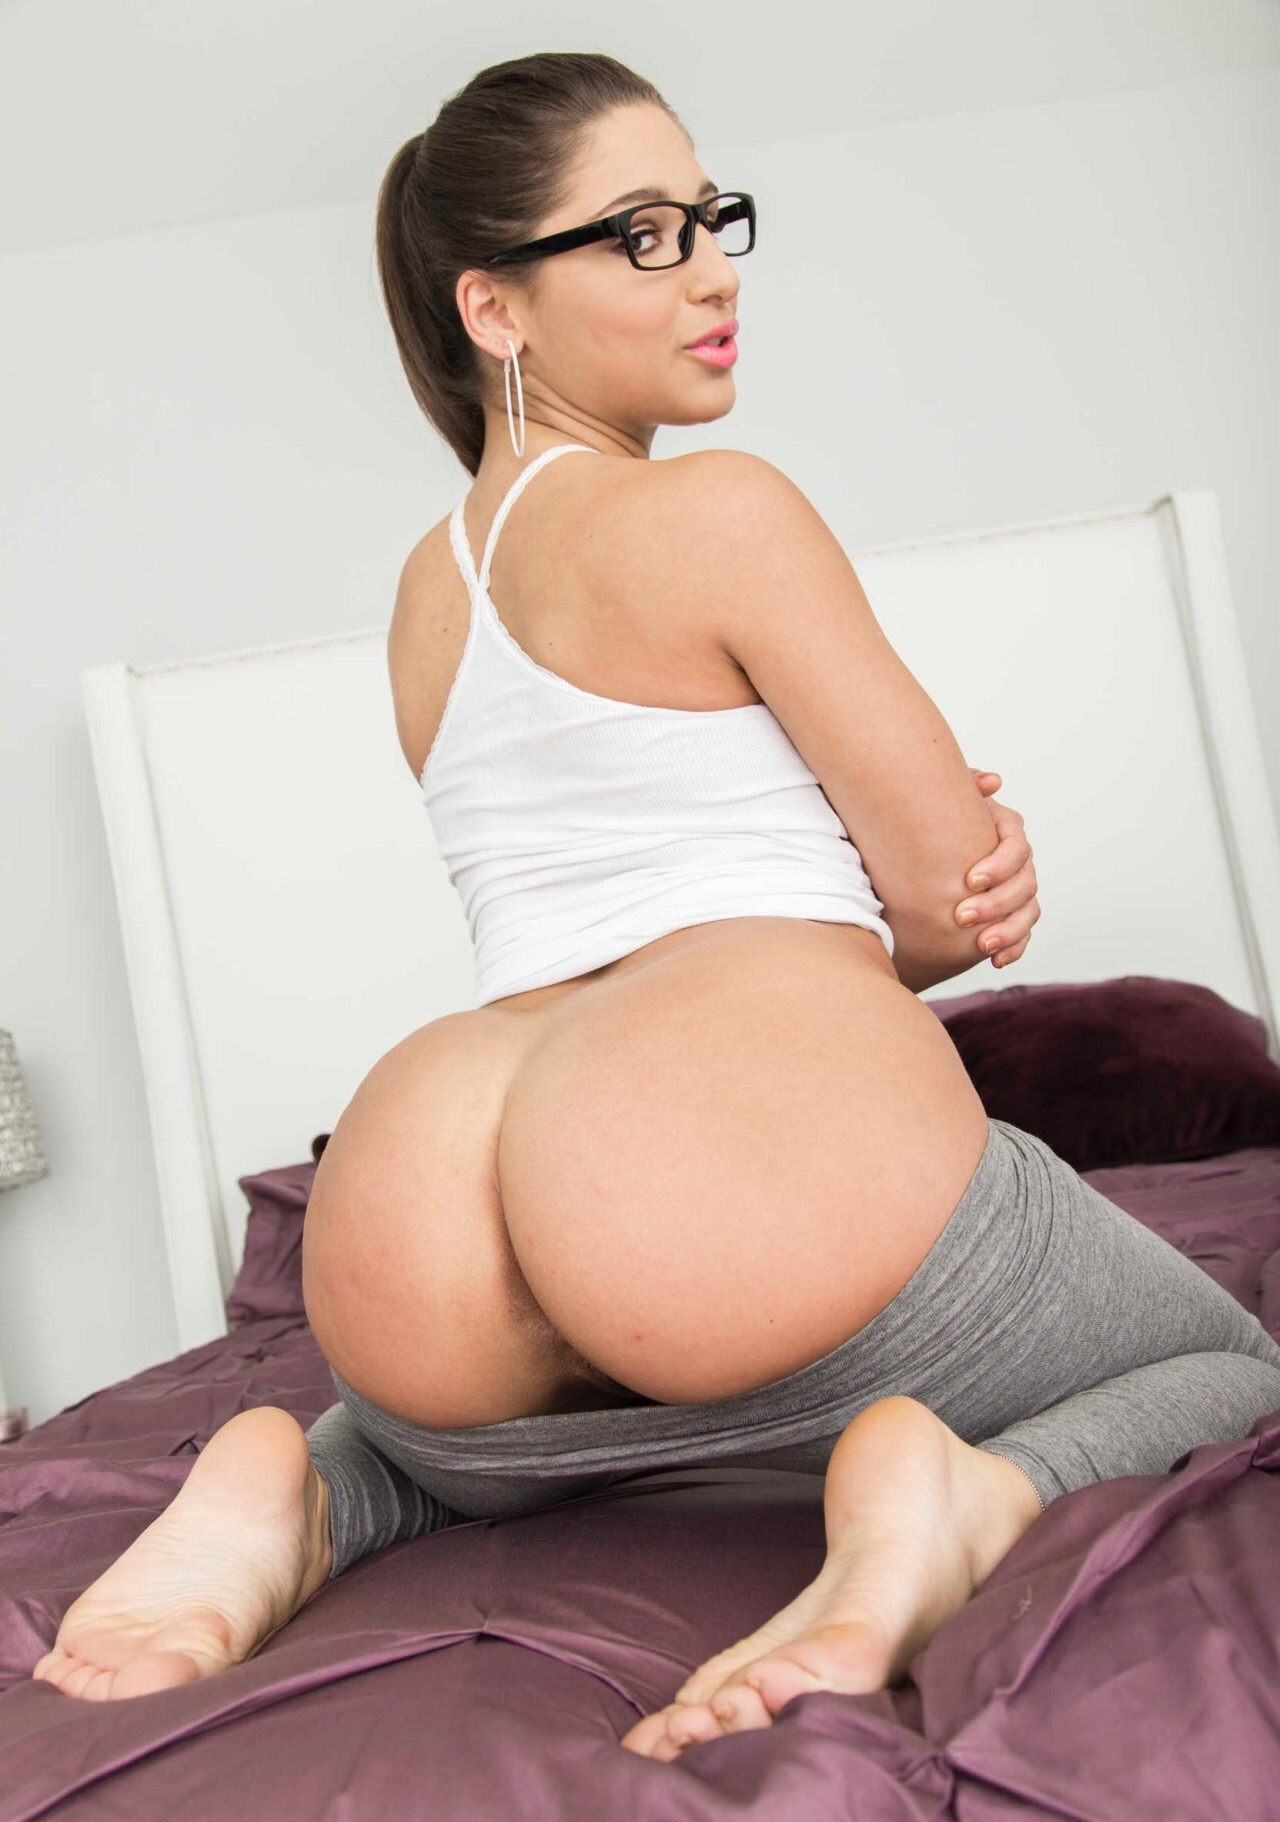 Big Booty Naked Photo - Porn Clips-4599